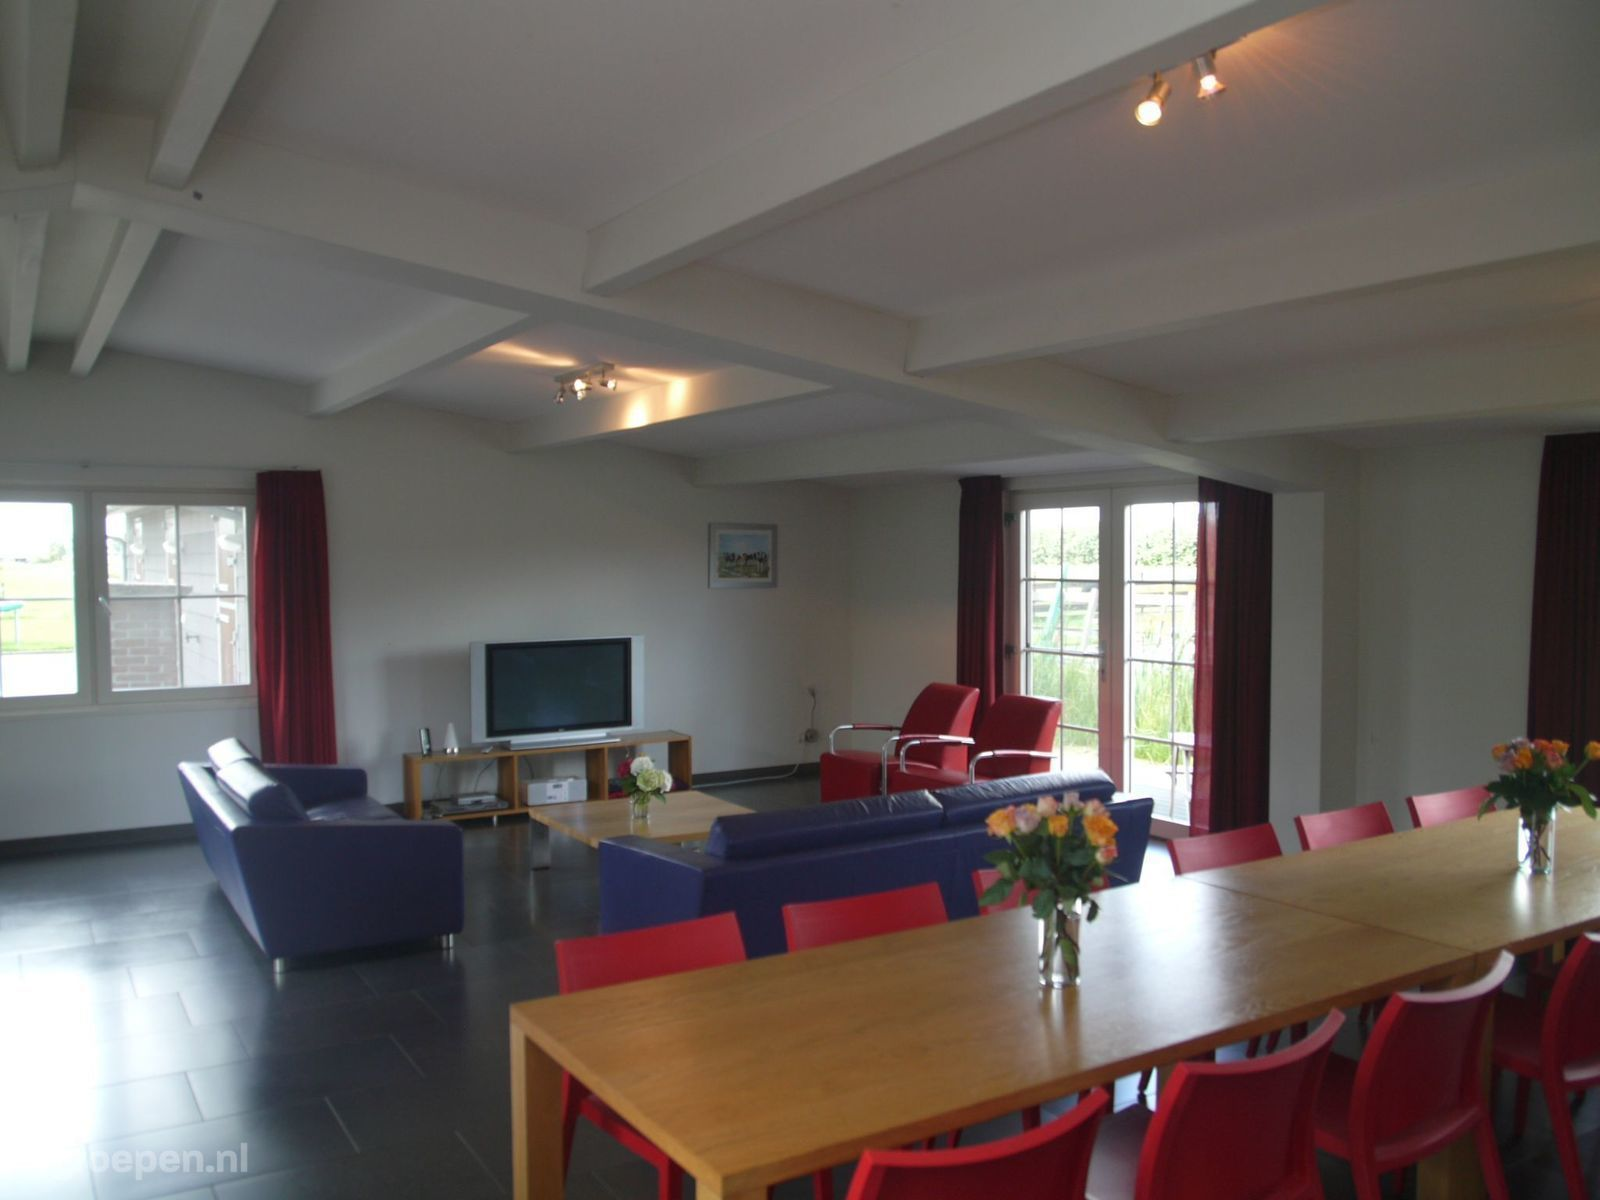 Group accommodation Rijpwetering